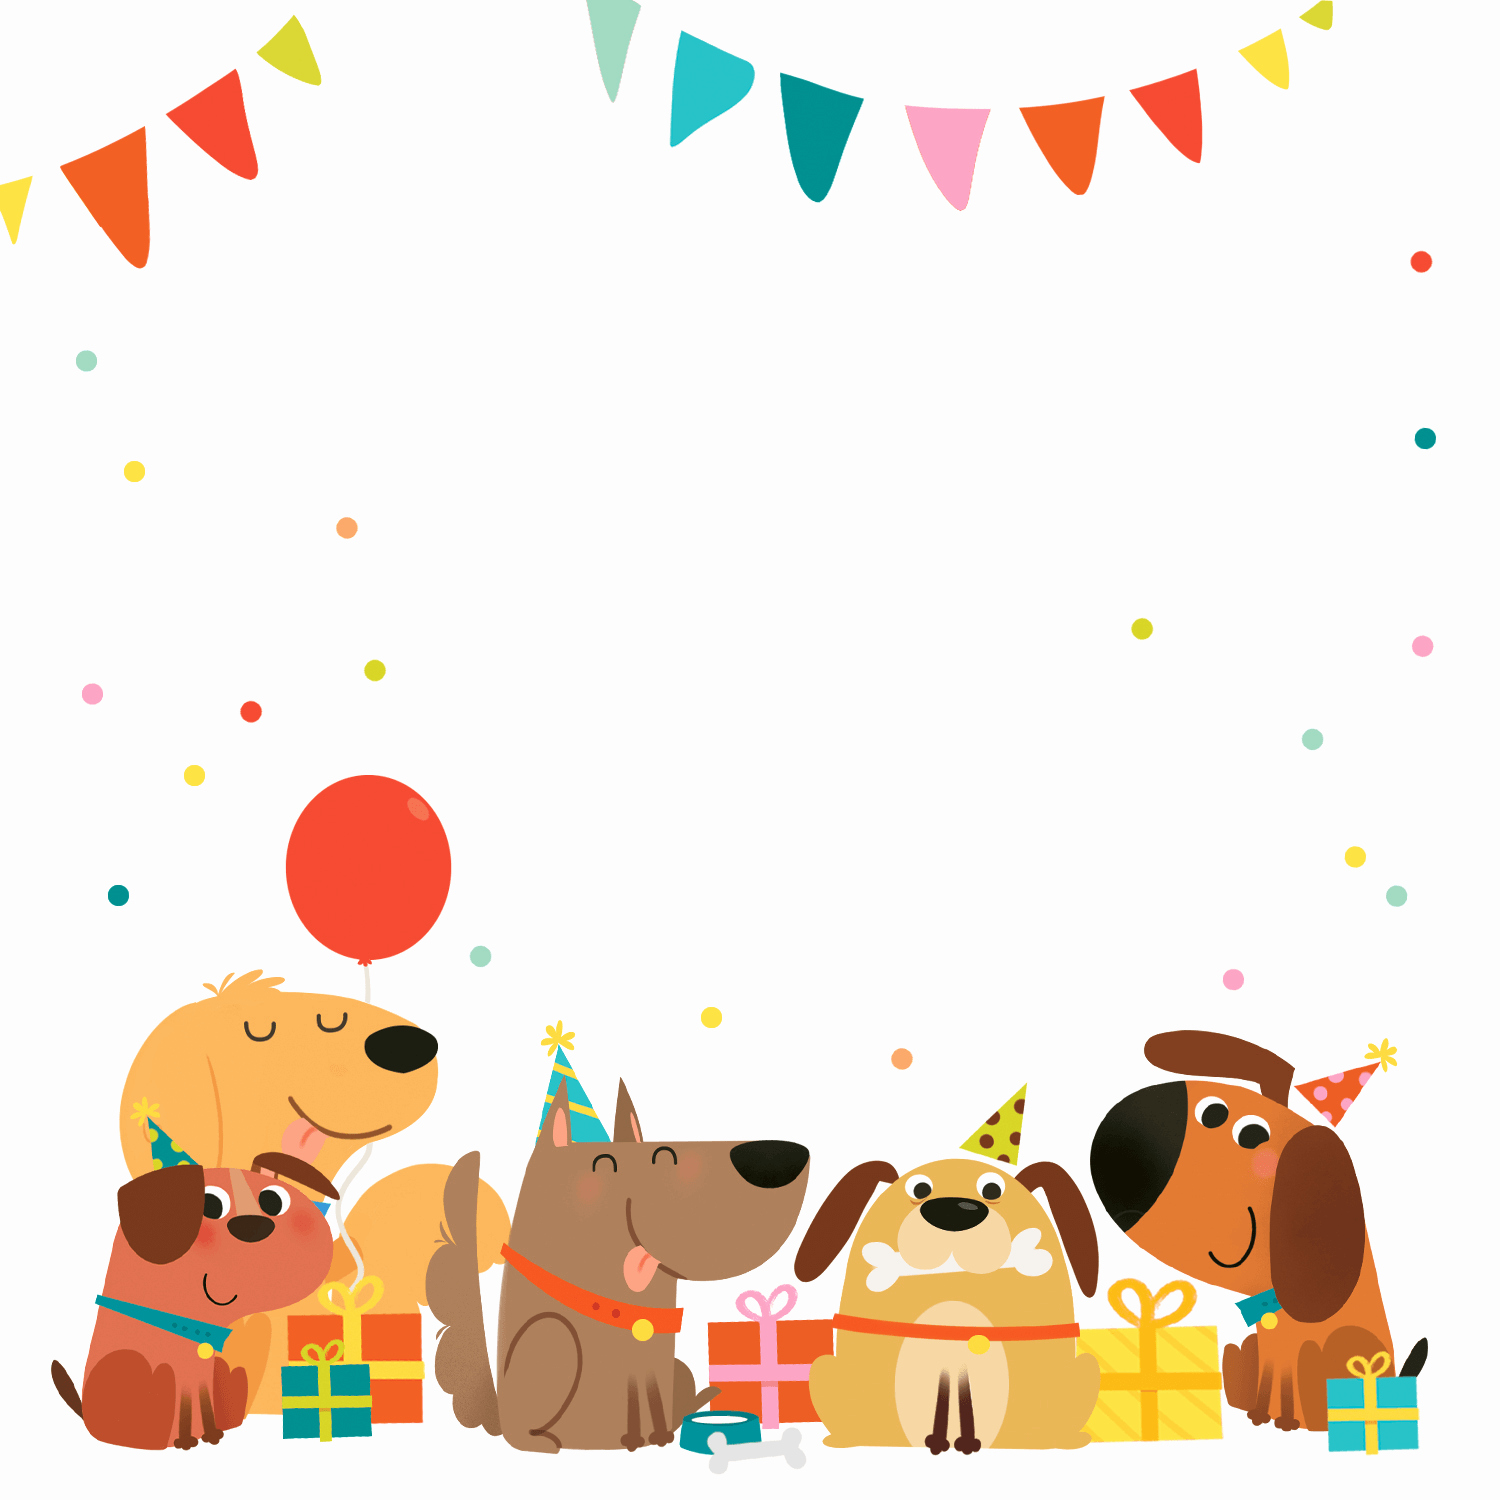 Free Printable Birthday Invitation Templates Unique Delighted Dogs Free Printable Birthday Invitation